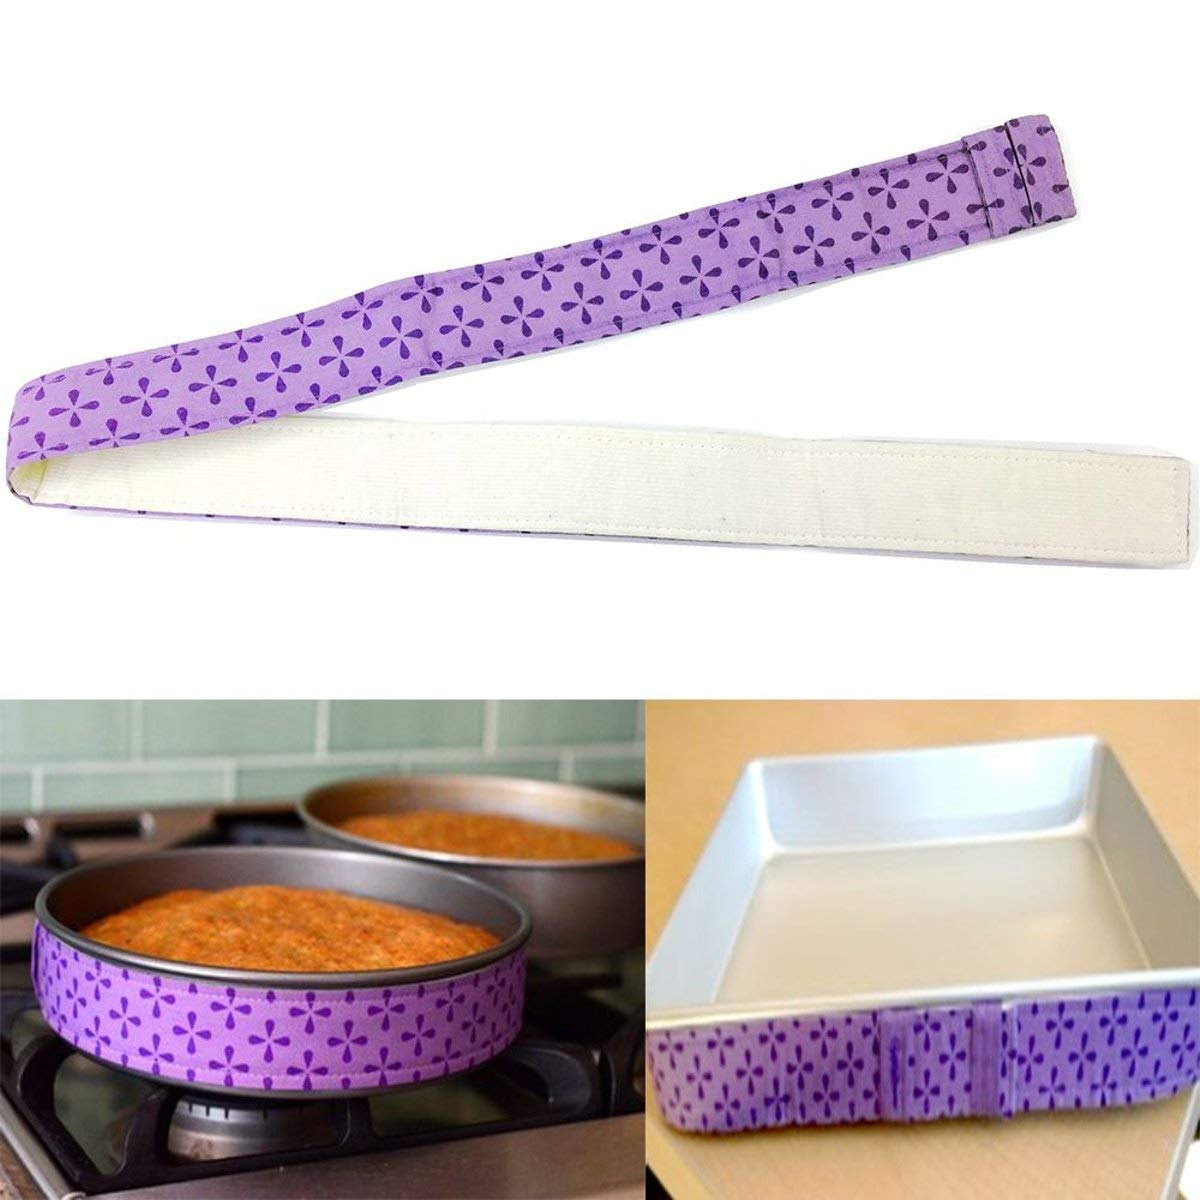 Tacoli- 2018 New Cake Pan Strips Bake Even Strip Belt Moist Level Cake Decorating Tools Baking Sheet To Protect Banding Cloth Pasty Tool